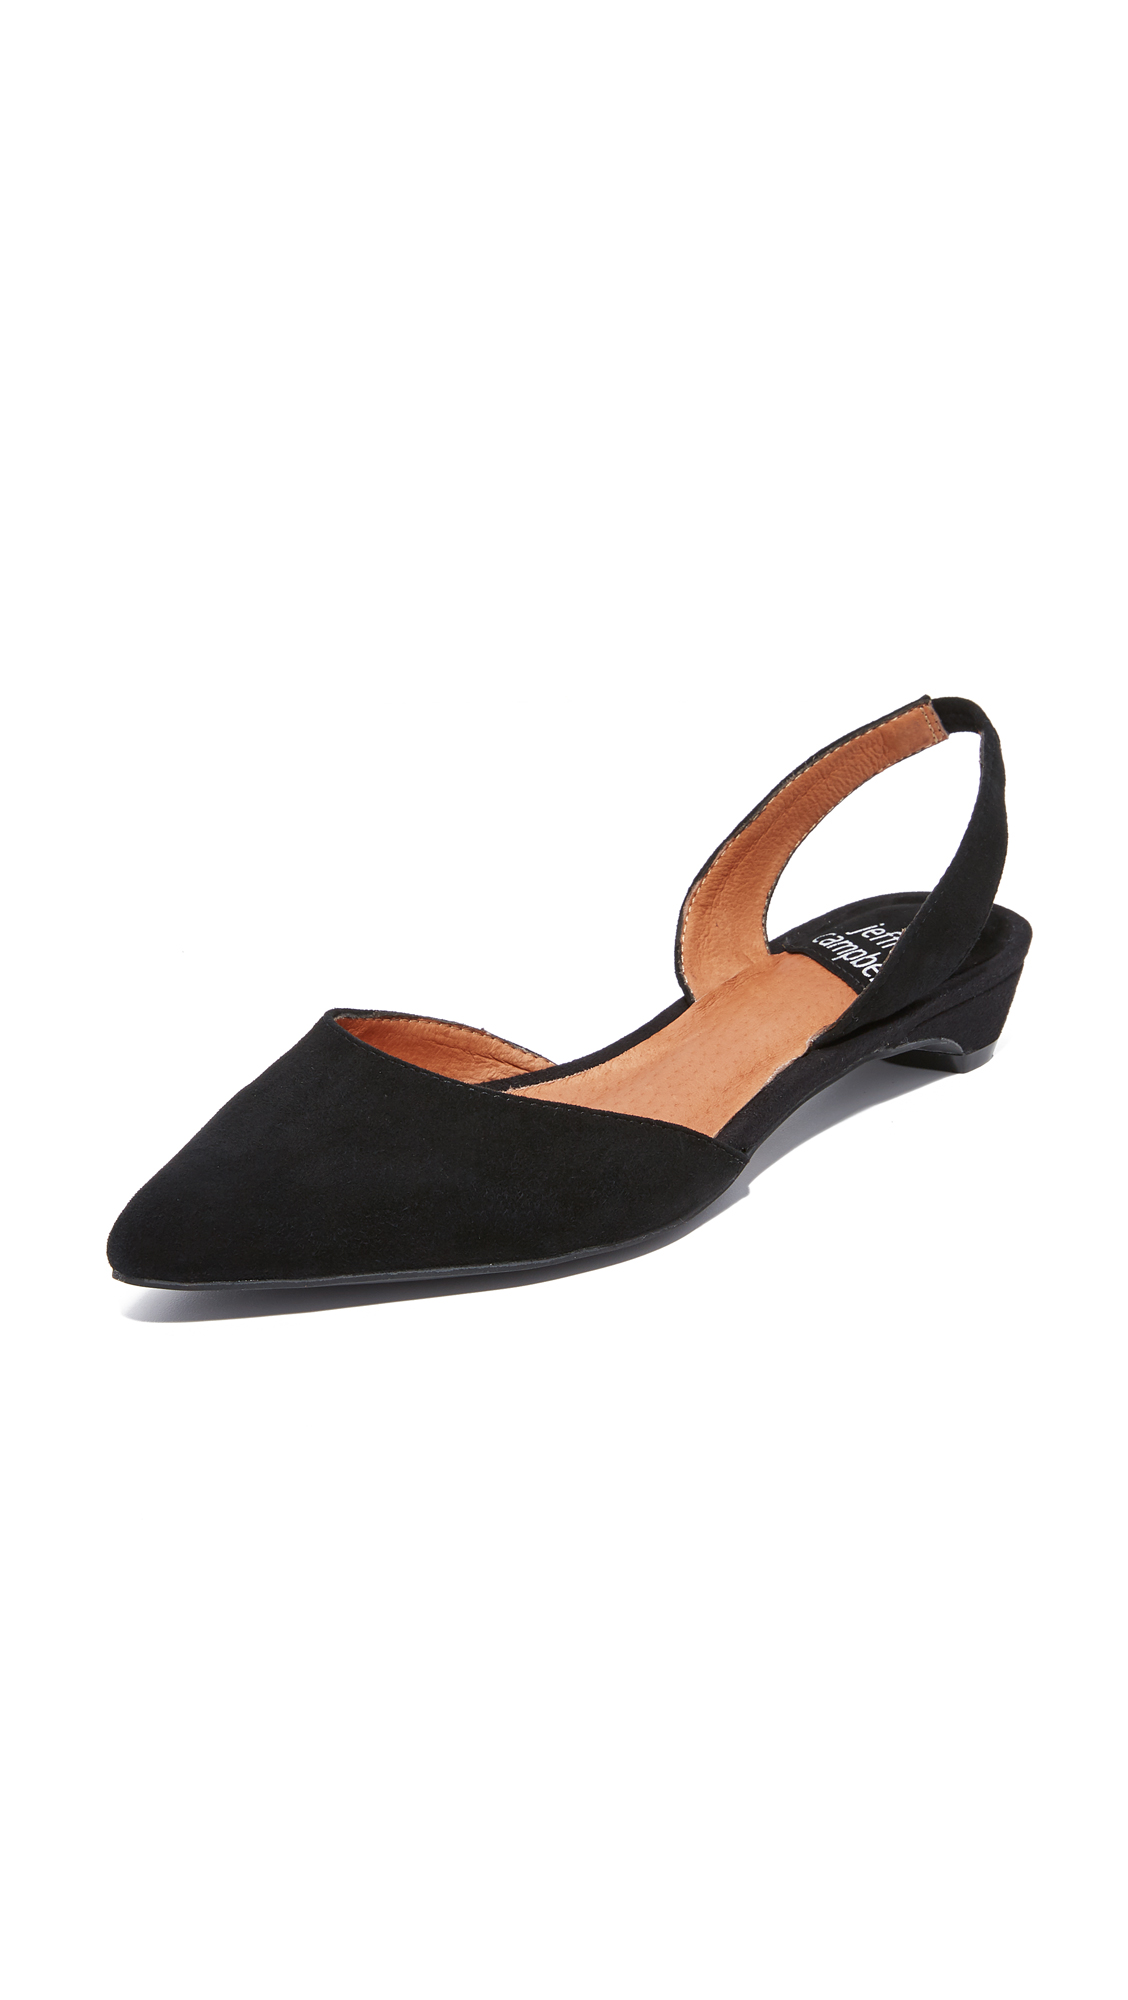 Jeffrey Campbell Shree Suede Flats